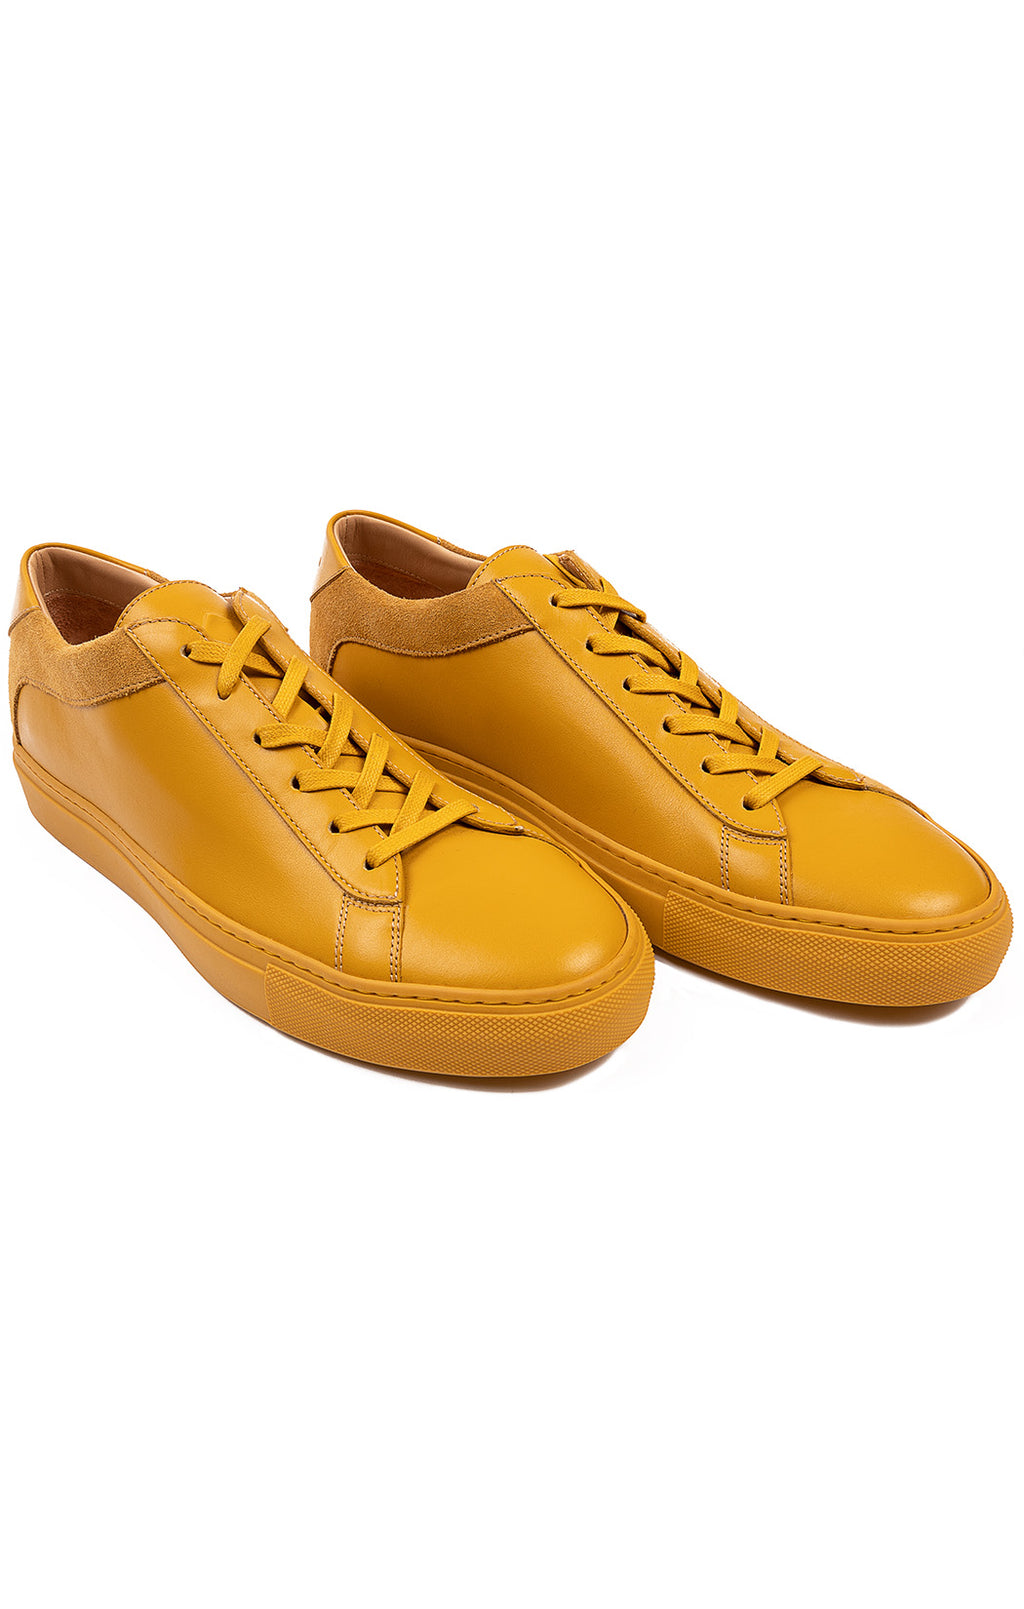 Mustard yellow leather lace ups